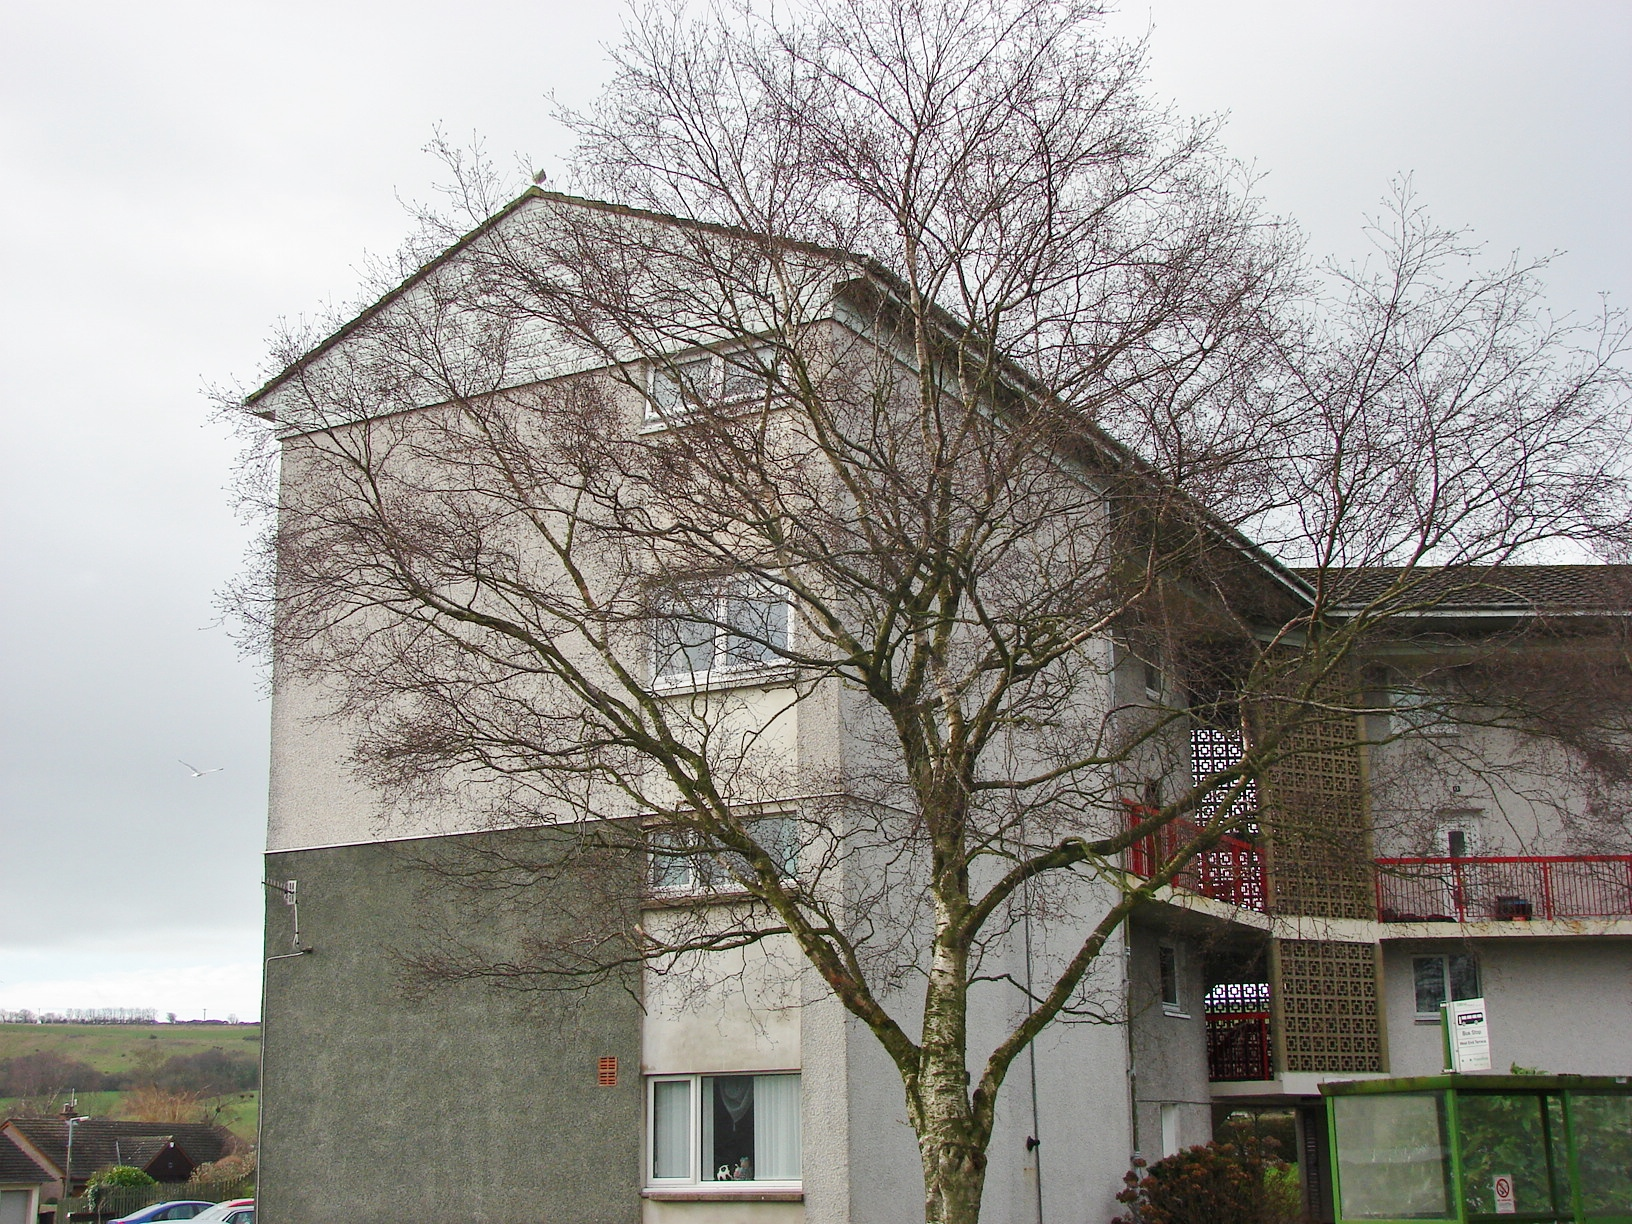 Photograph of 23 Arran Court, Stranraer